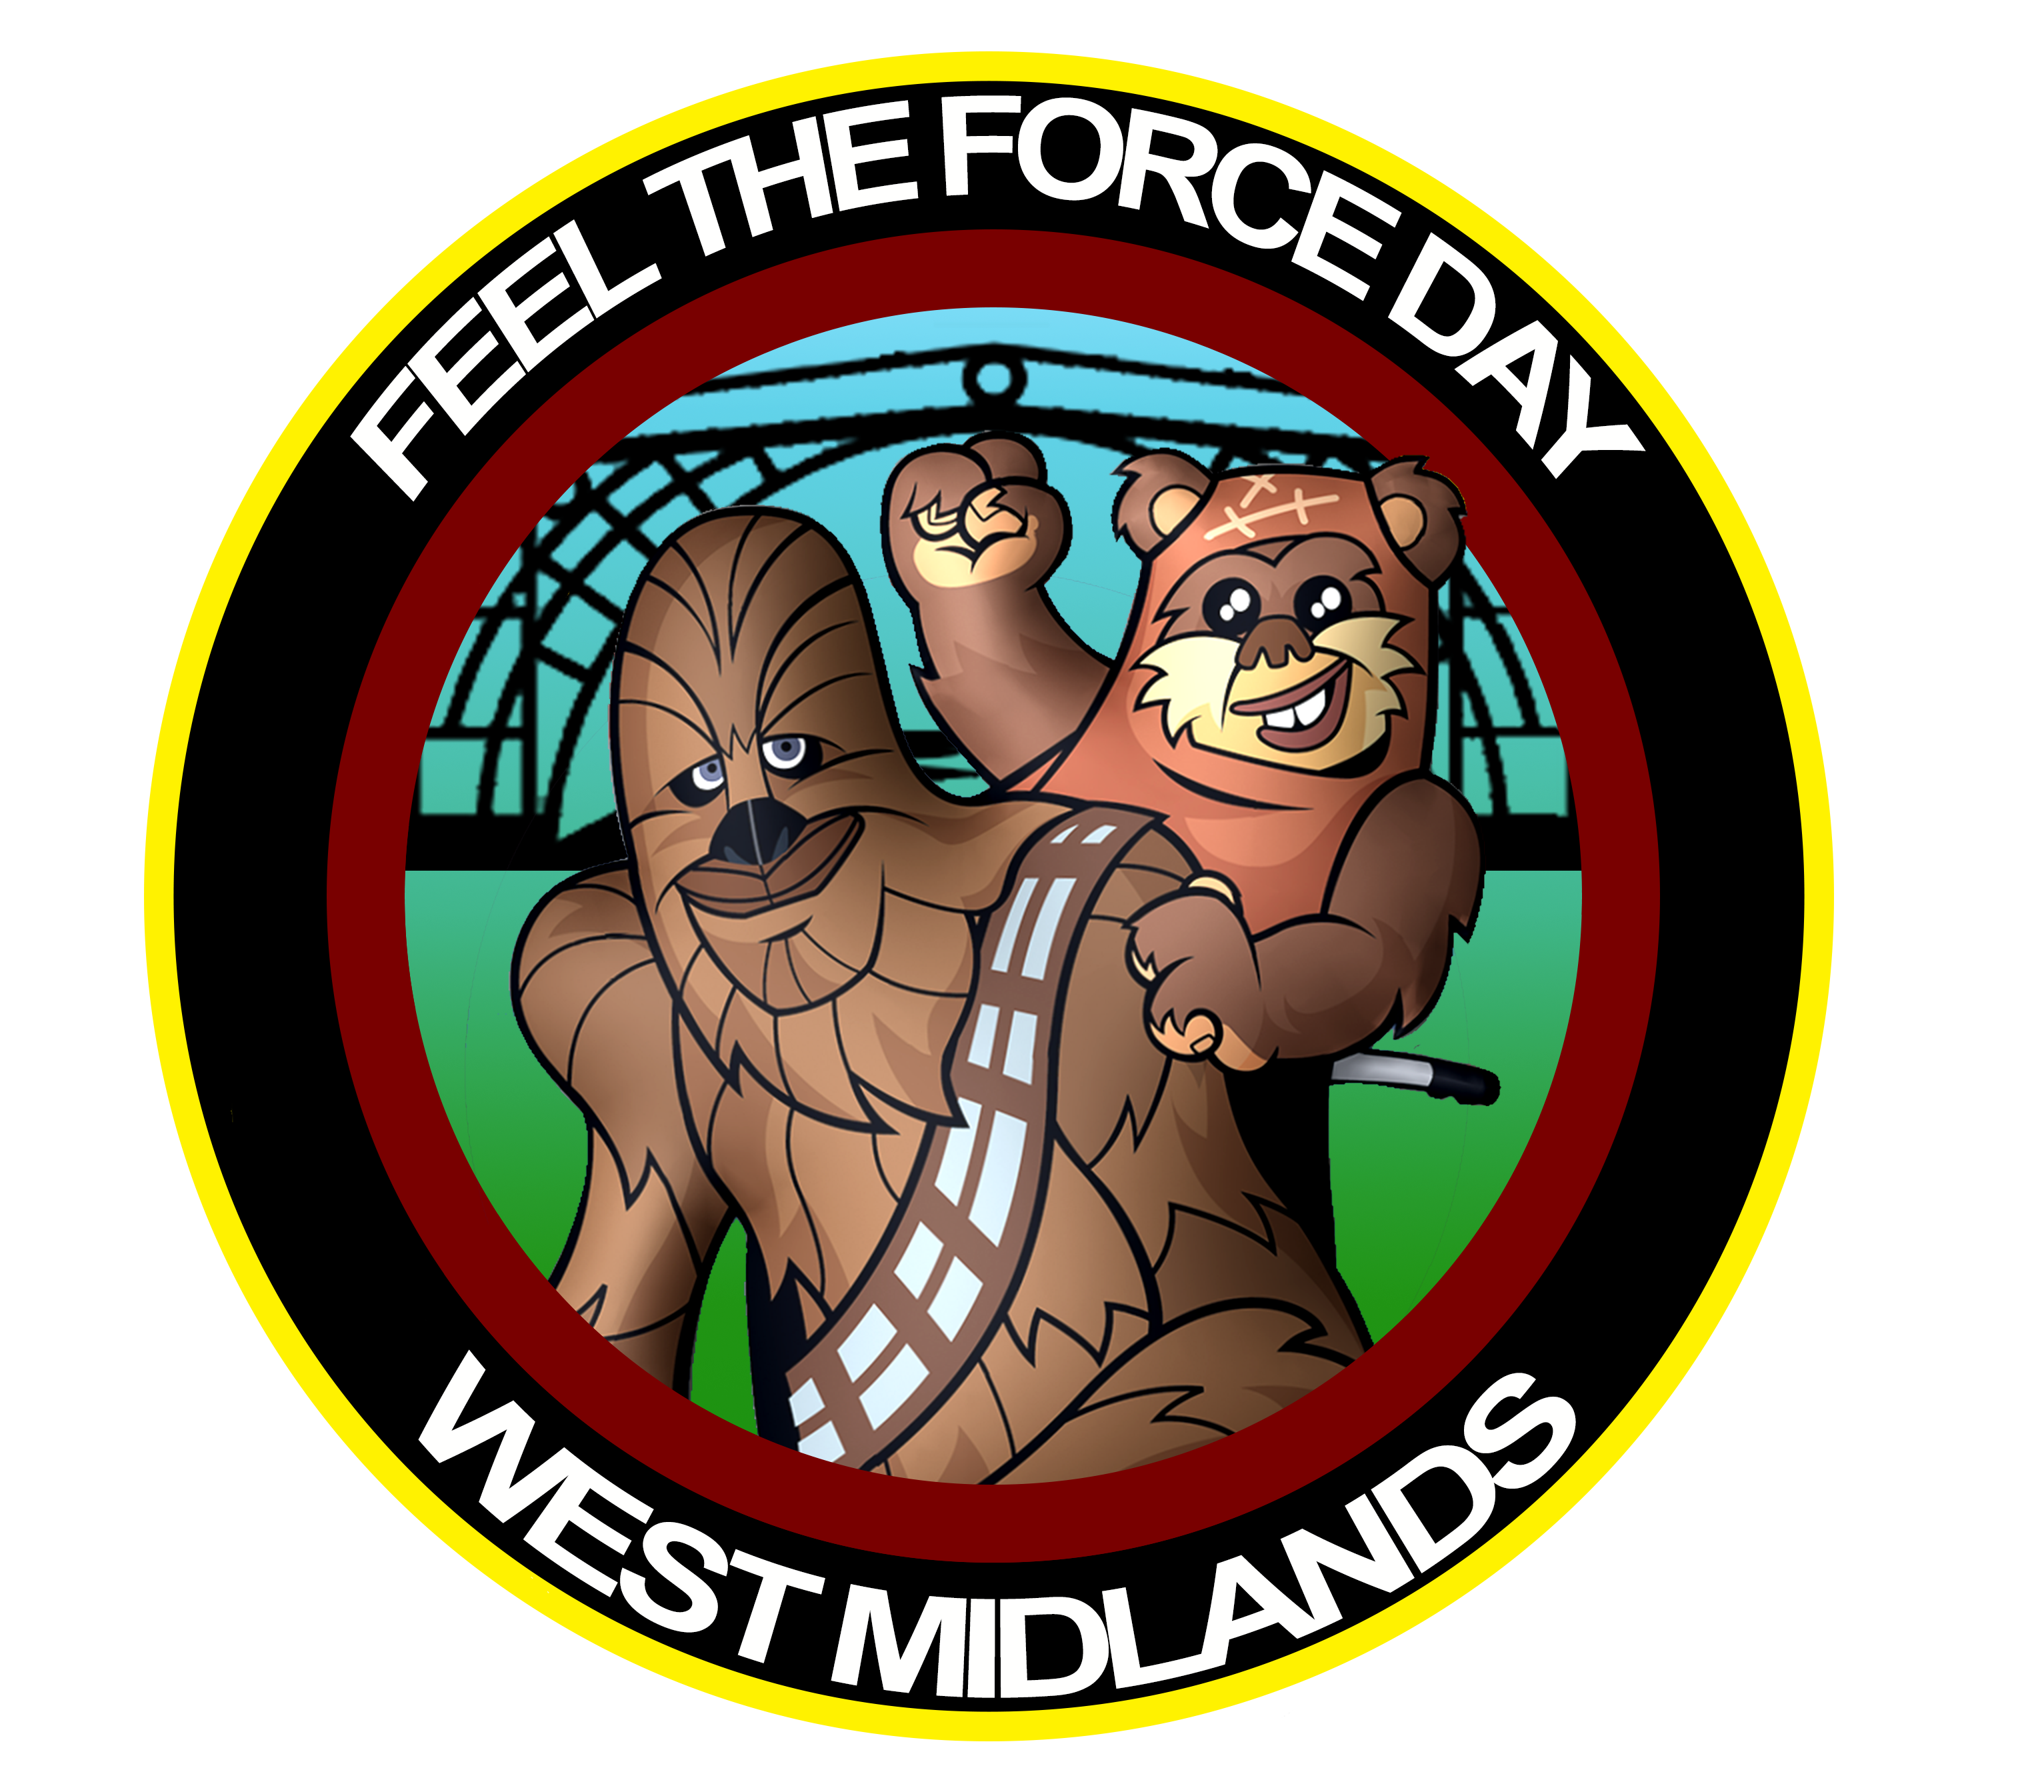 Feel the Force Day General Logo